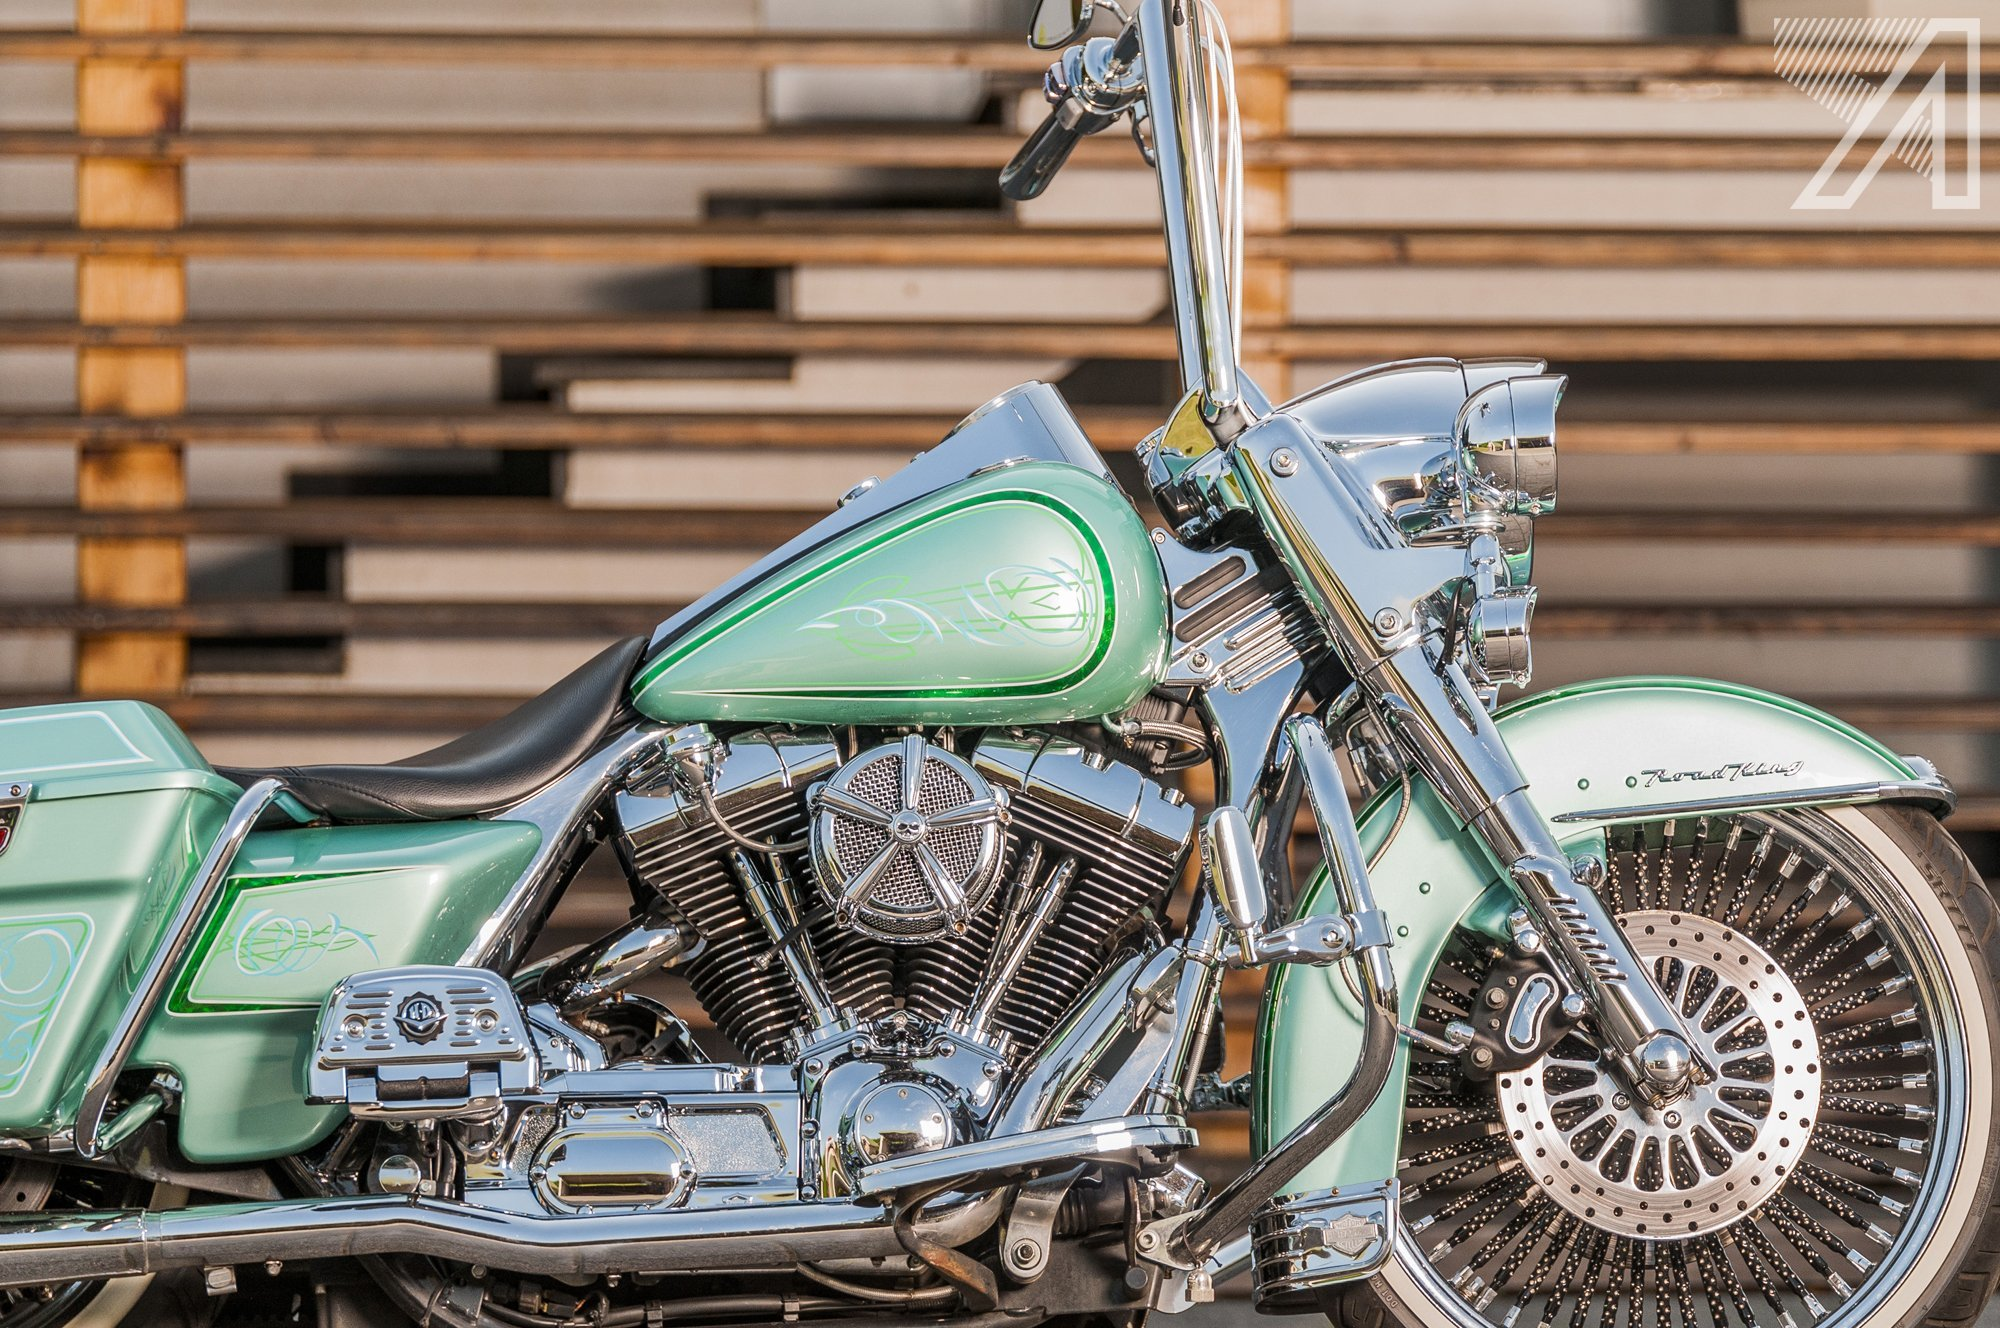 2016-10::1476001602-h-d-road-king-green-candy-leaf-3.jpg